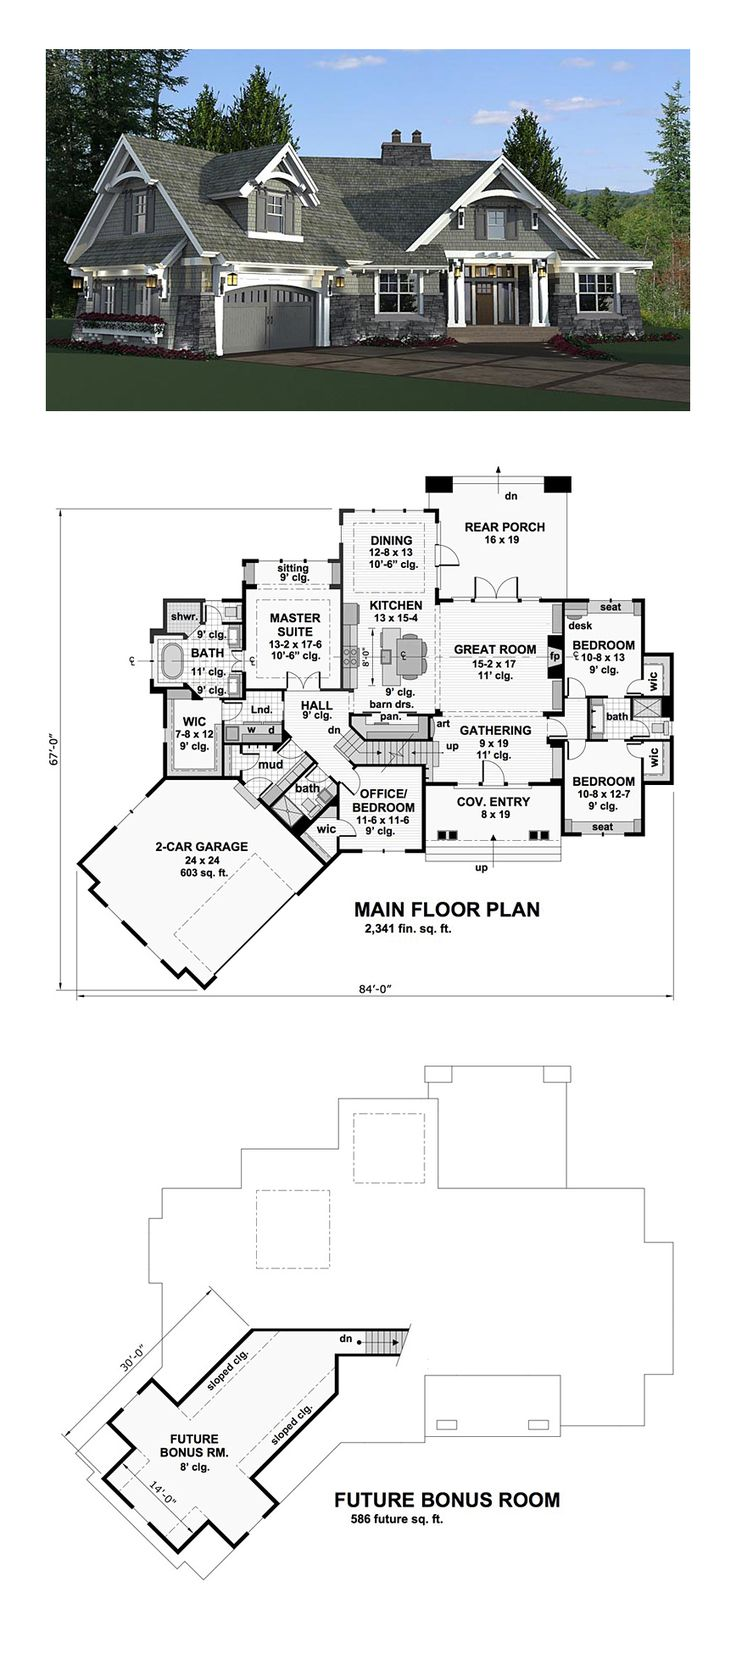 bungalow cottage craftsman french country tudor house plan 42679 - Bungalow Floor Plans